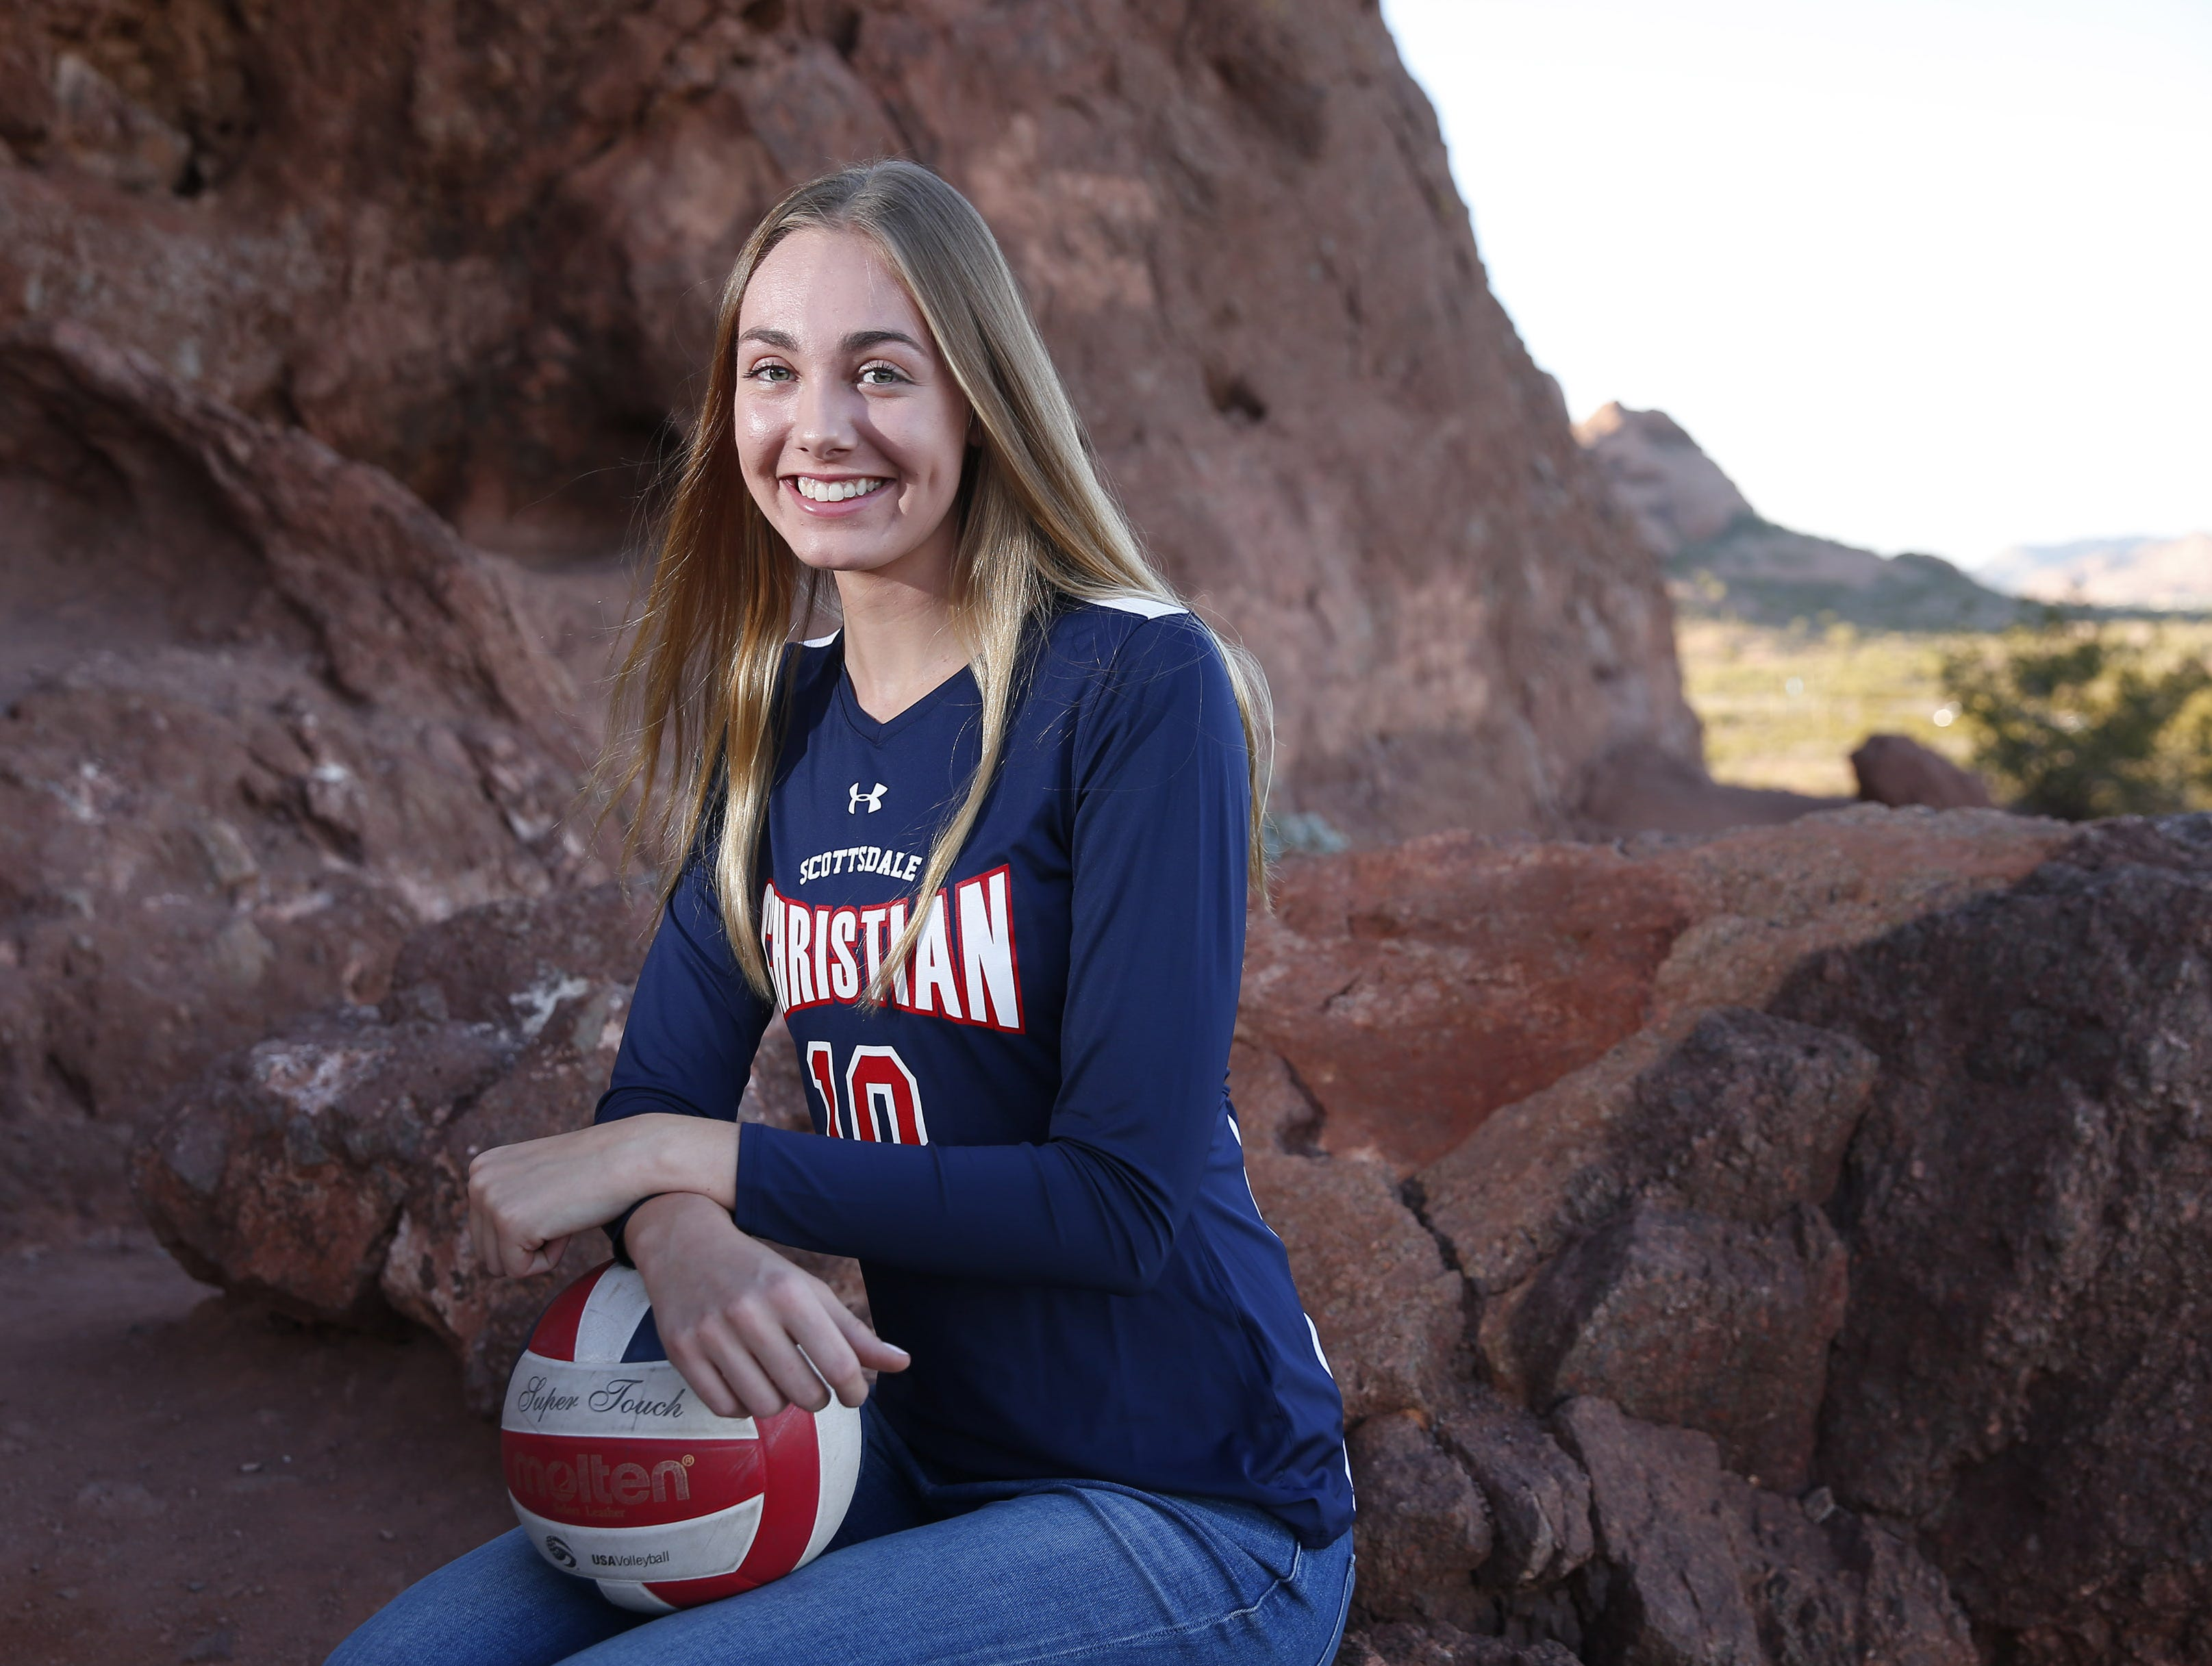 Lauren Ohlinger of Scottsdale Christian is a finalist for the azcentral Sports Awards Girls High School Volleyball of the Year. #azcsportsawards